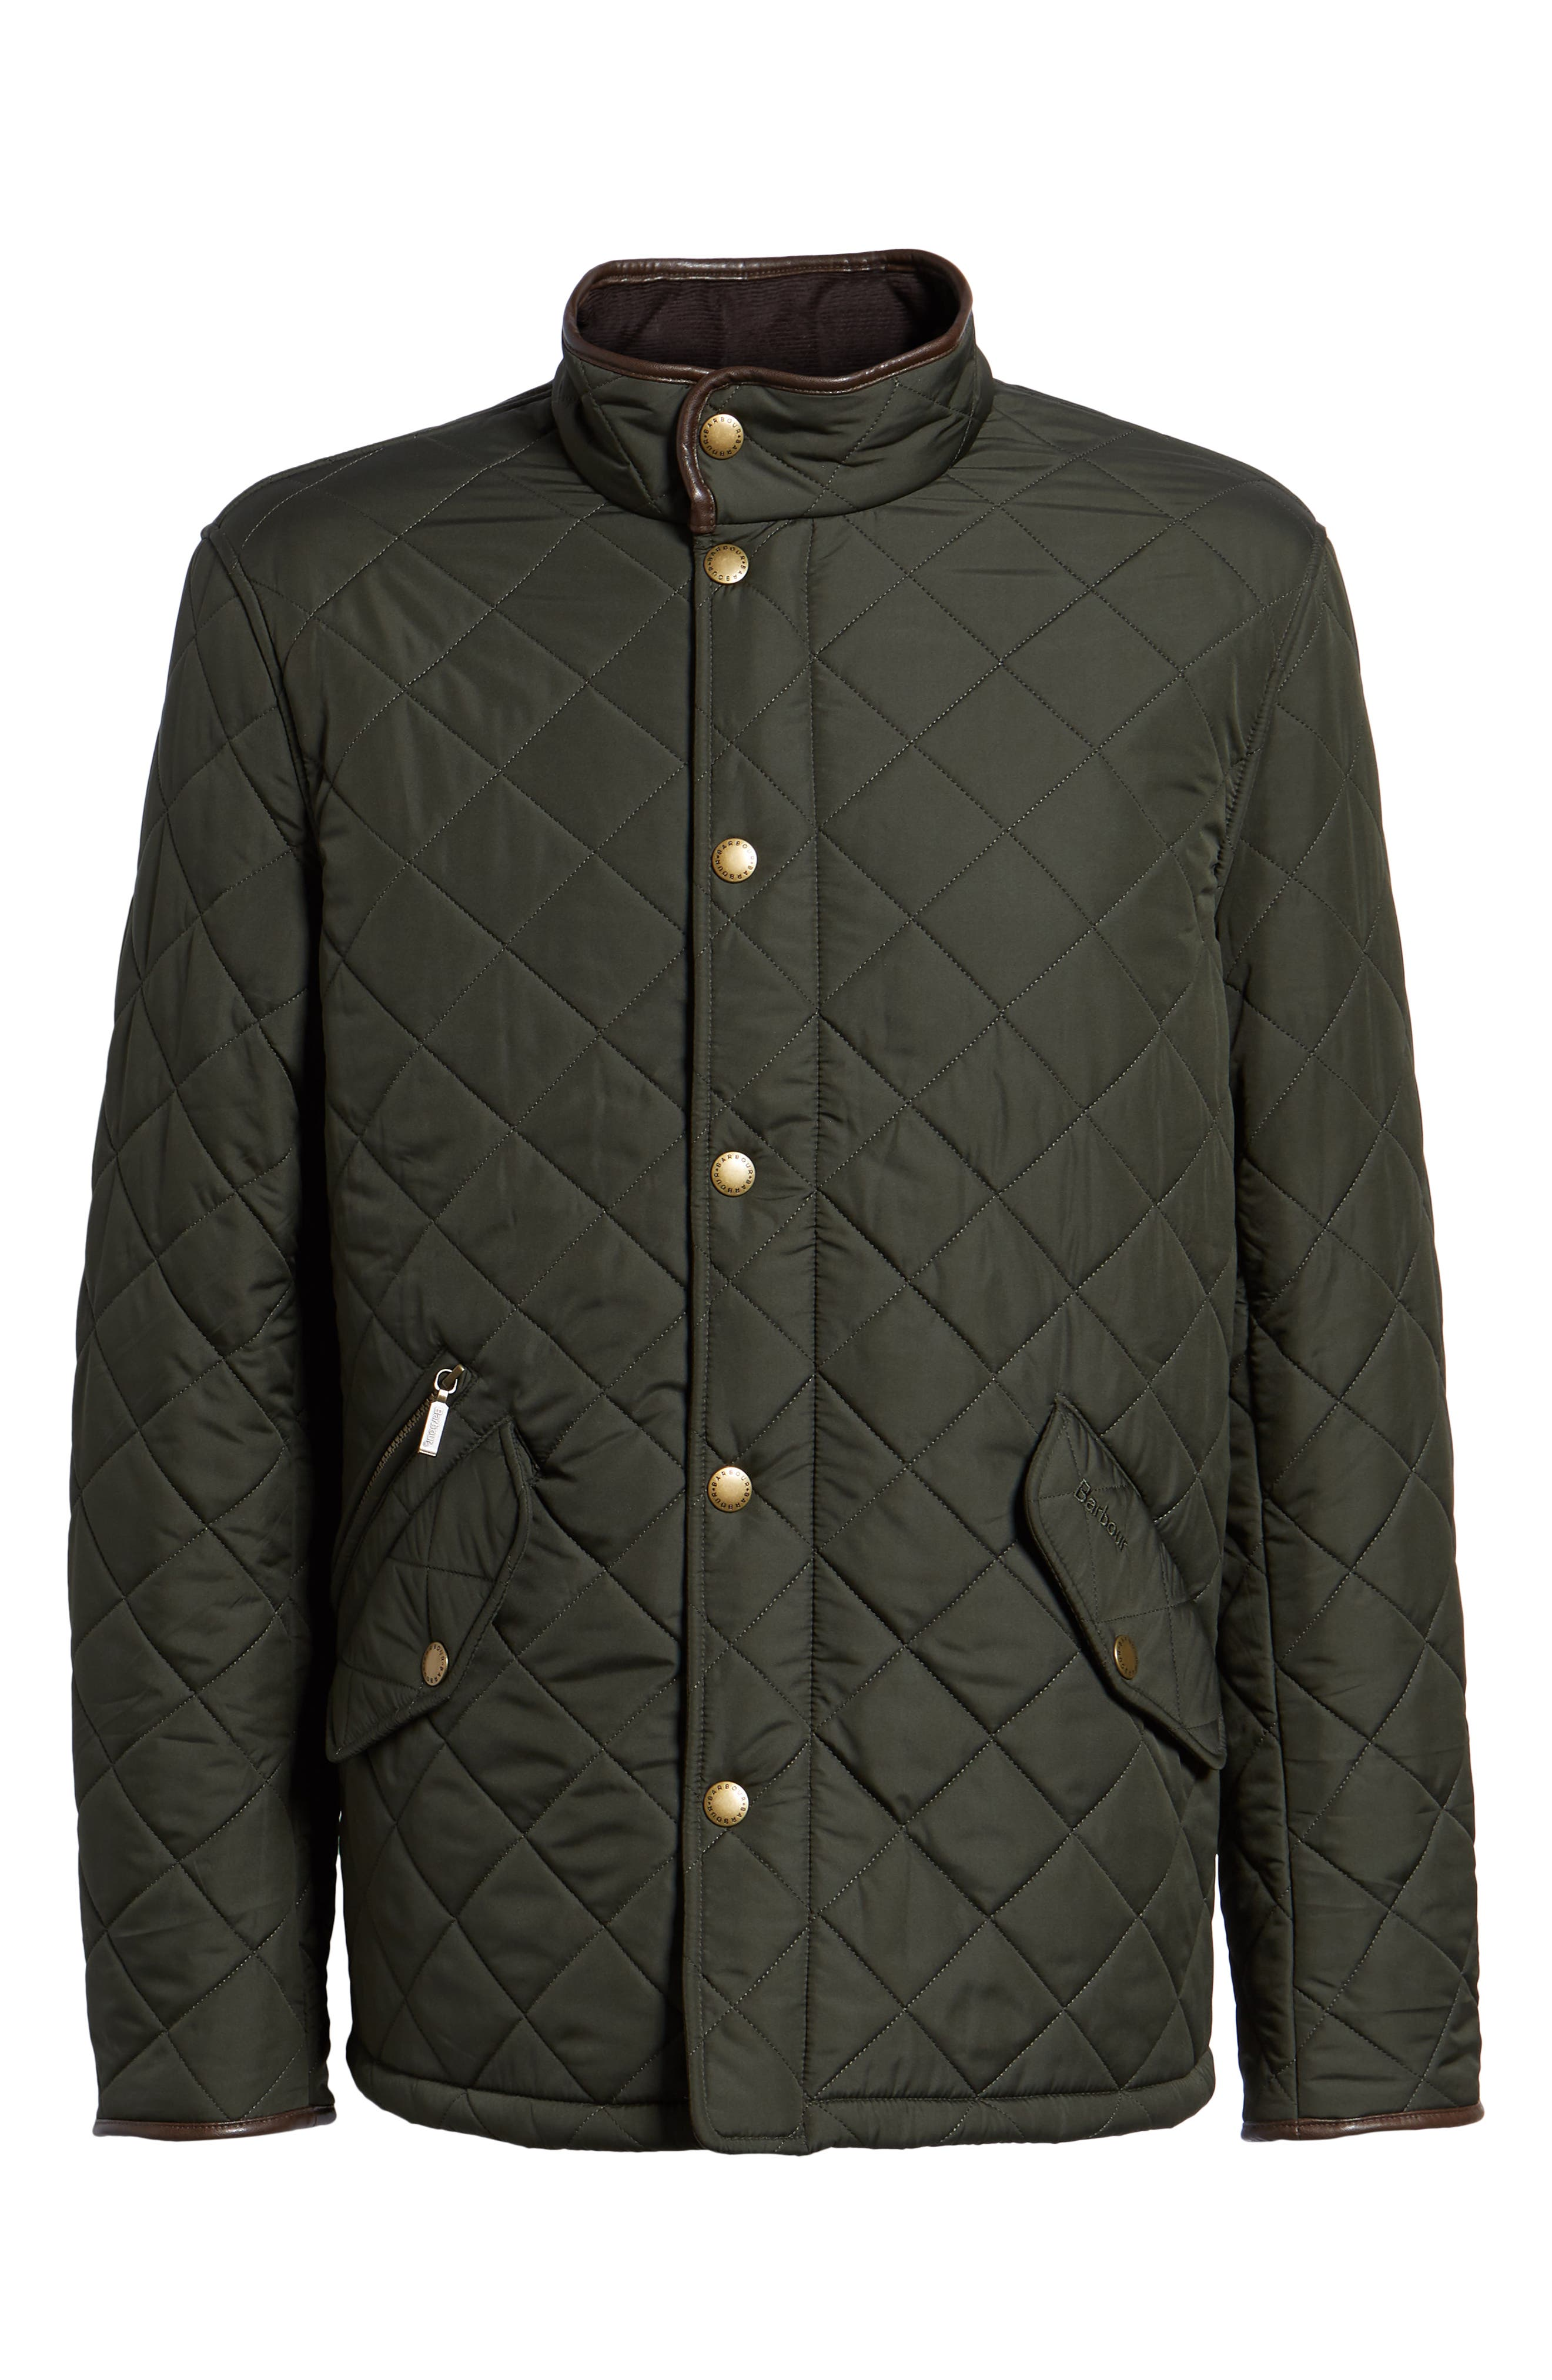 'Powell' Regular Fit Quilted Jacket,                             Alternate thumbnail 6, color,                             SAGE/ OLIVE